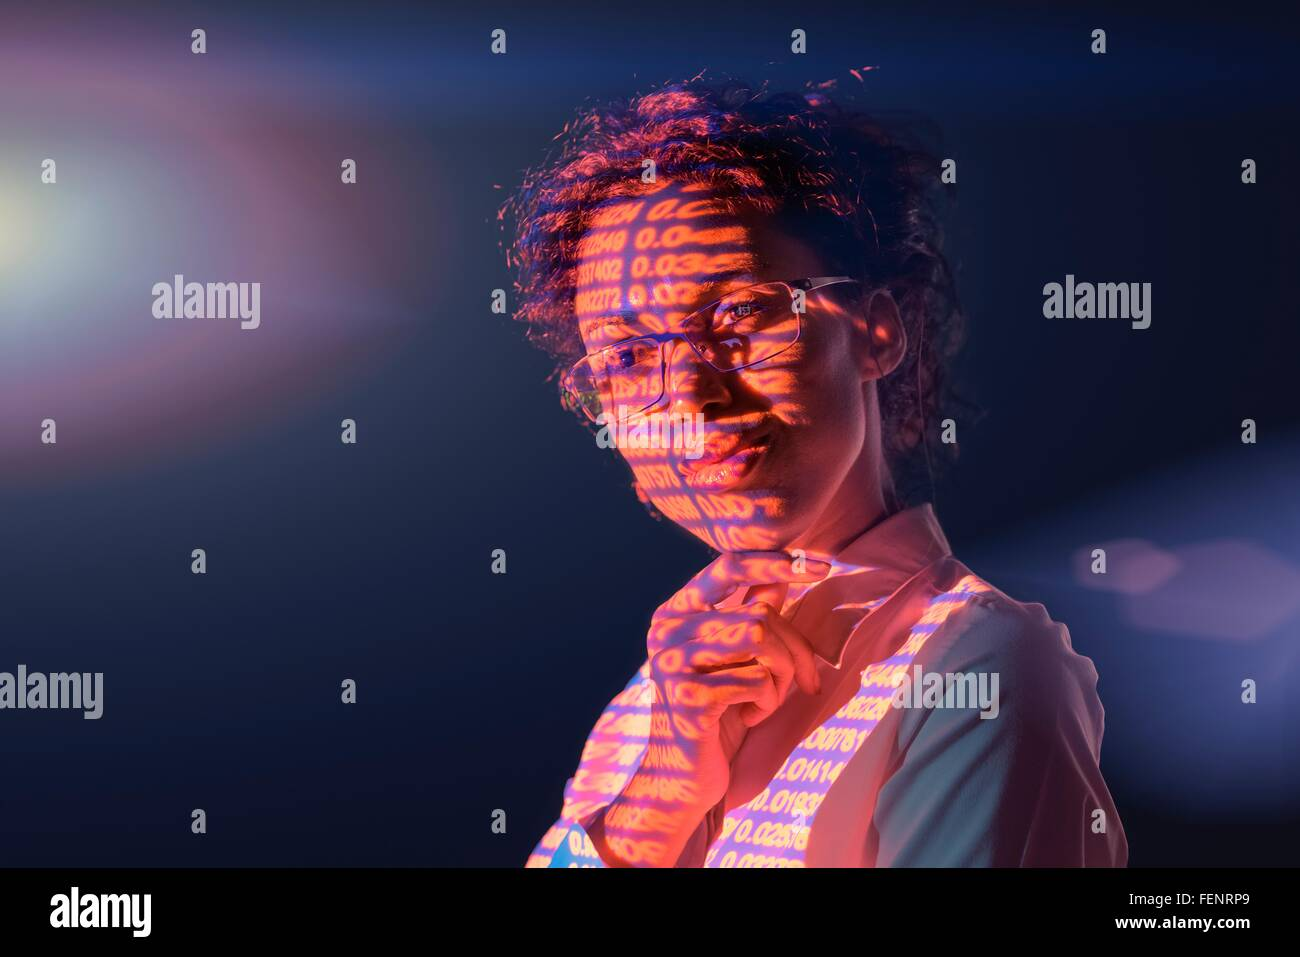 Businesswoman in thought with projected financial numbers on dark background - Stock Image